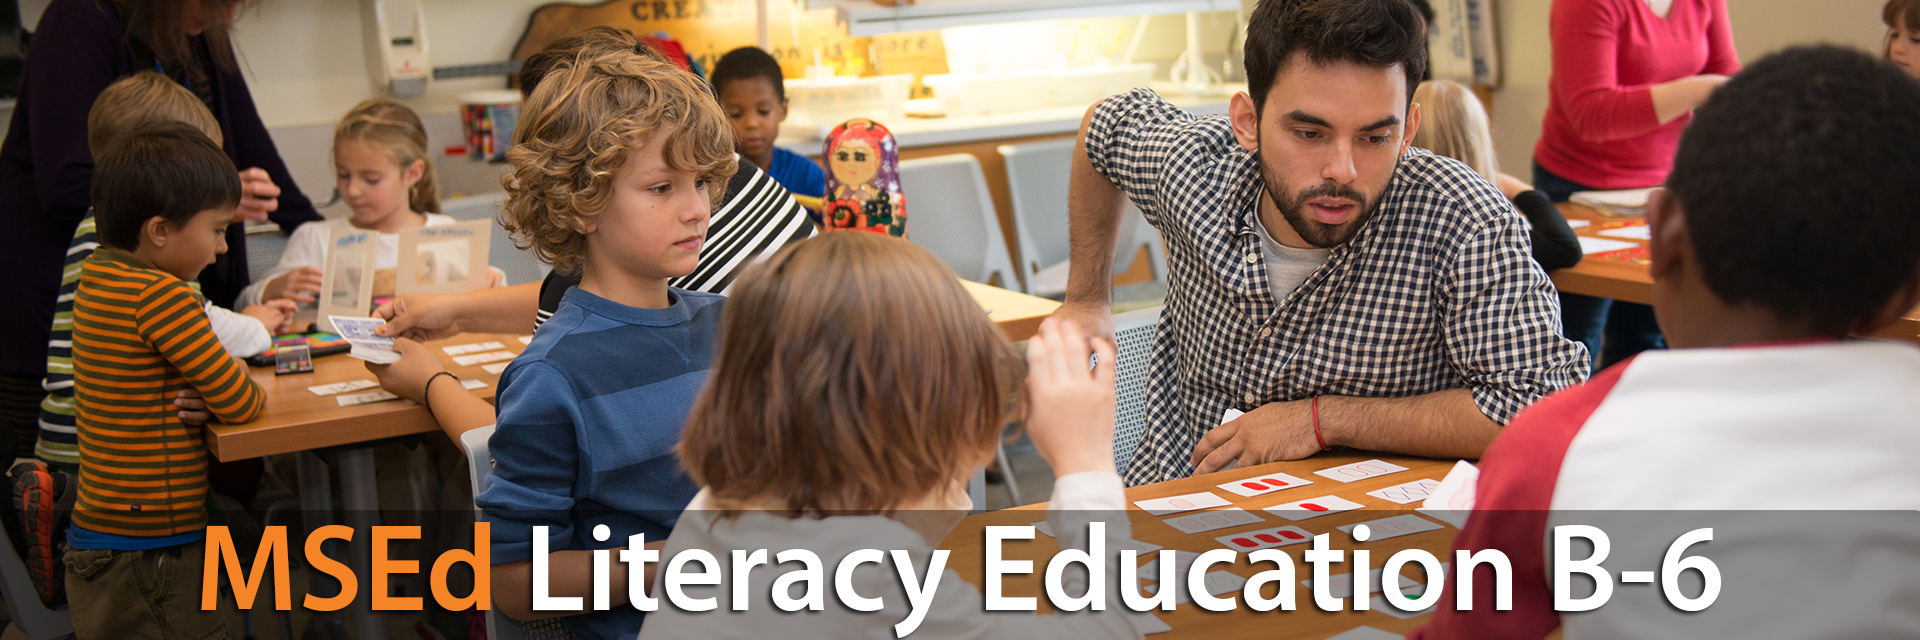 MSEd Literacy Education (B-6)